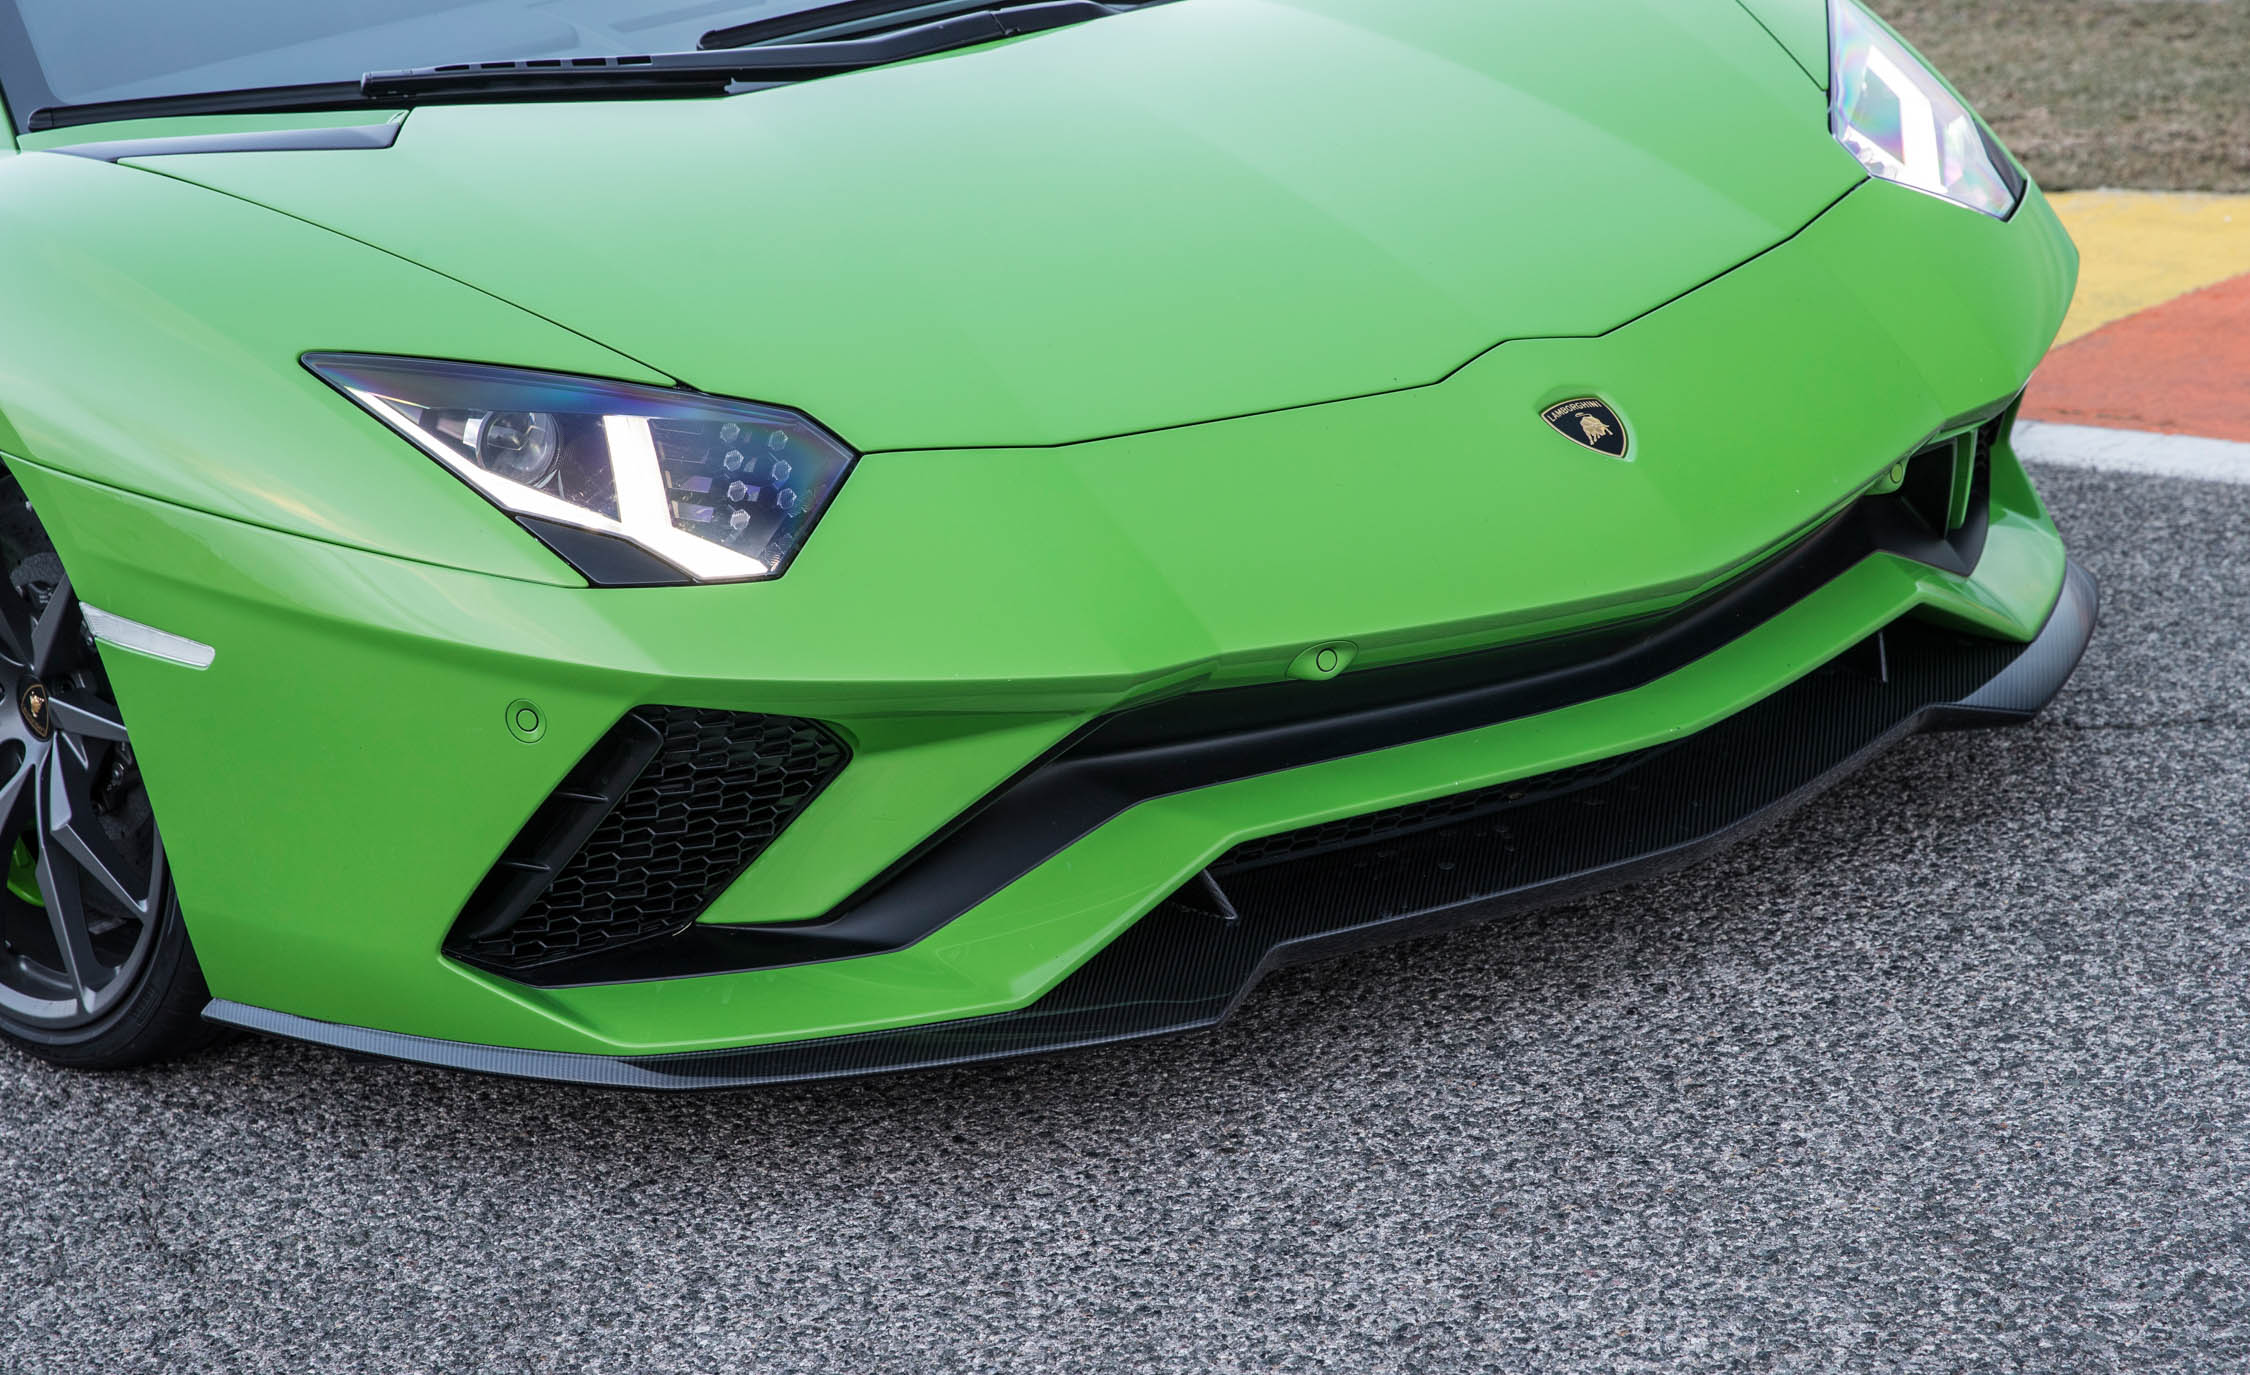 2017 Lamborghini Aventador S Exterior View Front Bumper And Headlight (Photo 5 of 20)